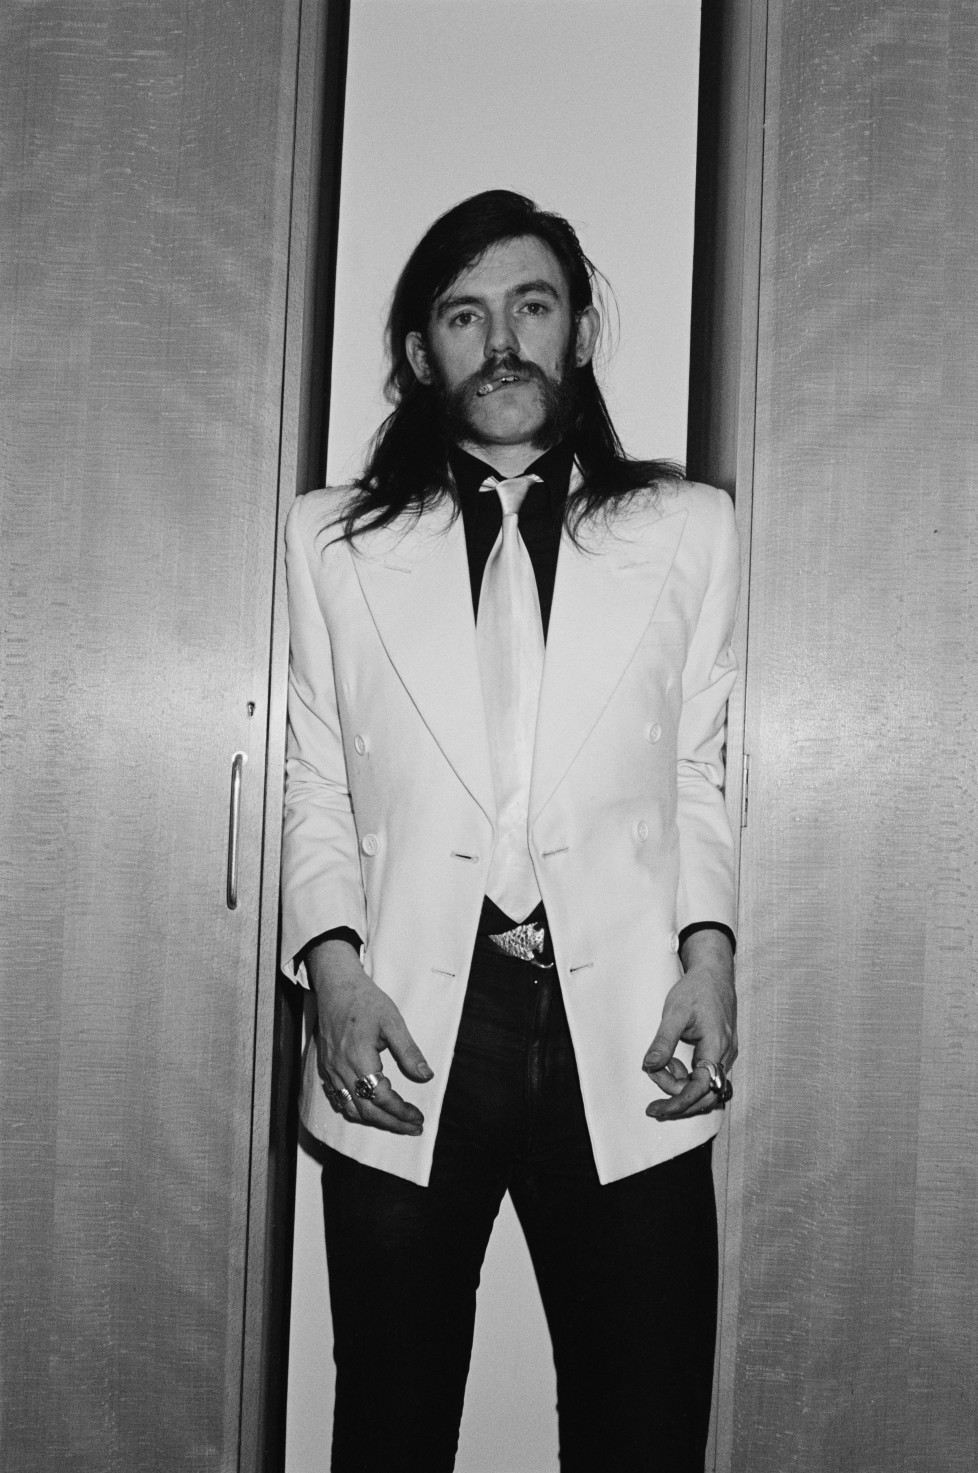 LONDON - FEBRUARY 01: singer and bassist Lemmy Kilmister from Motorhead posed backstage at Top Of The Pops TV Studios in London in February 1981. (Photo by Fin Costello/Redferns)